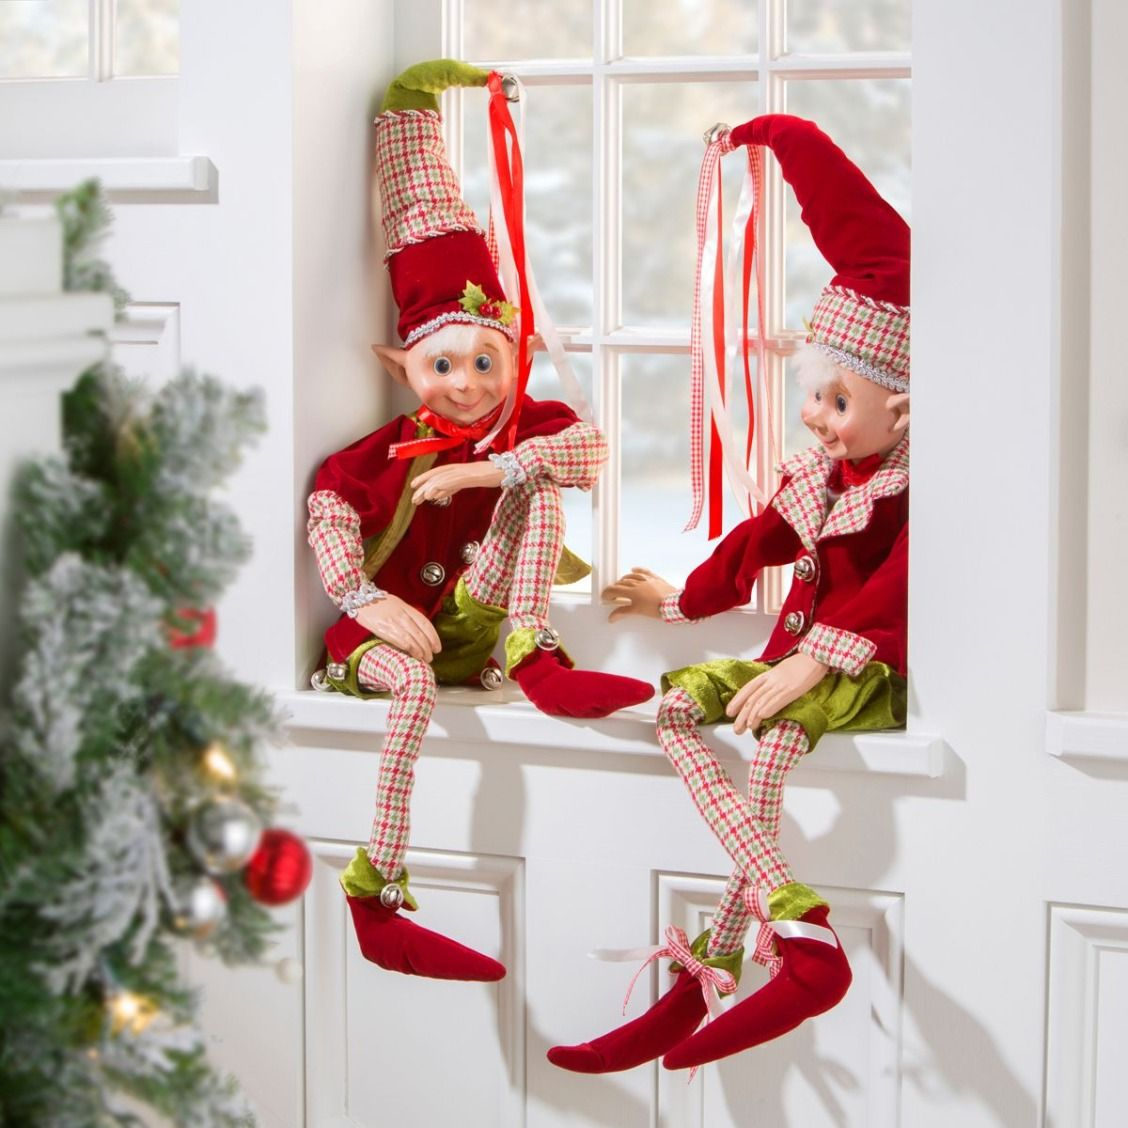 Cute And Cheerful Elves Will Brighten Just About Anyone S Day And These Unique Christmas Dec Indoor Christmas Decorations Holiday Decor Christmas Holiday Decor